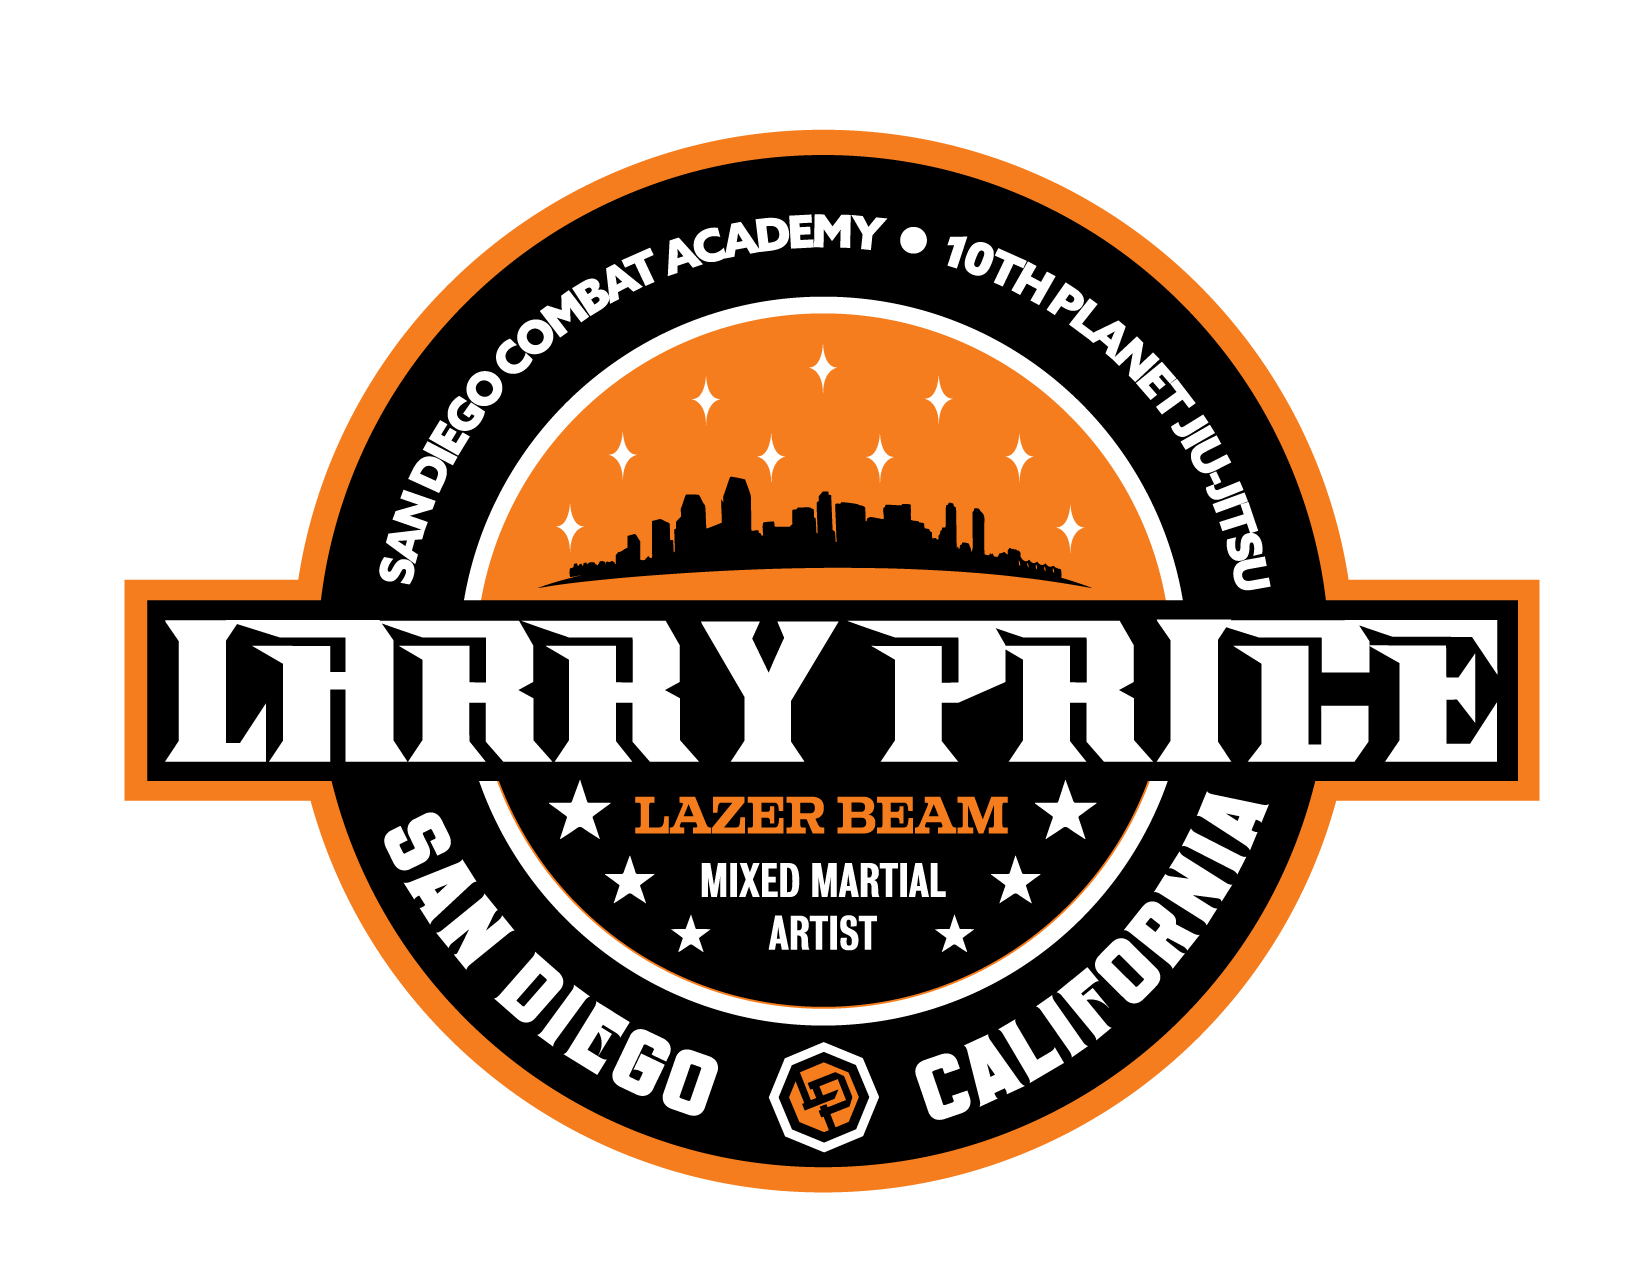 larry price MMA logo_FINAL-01.png